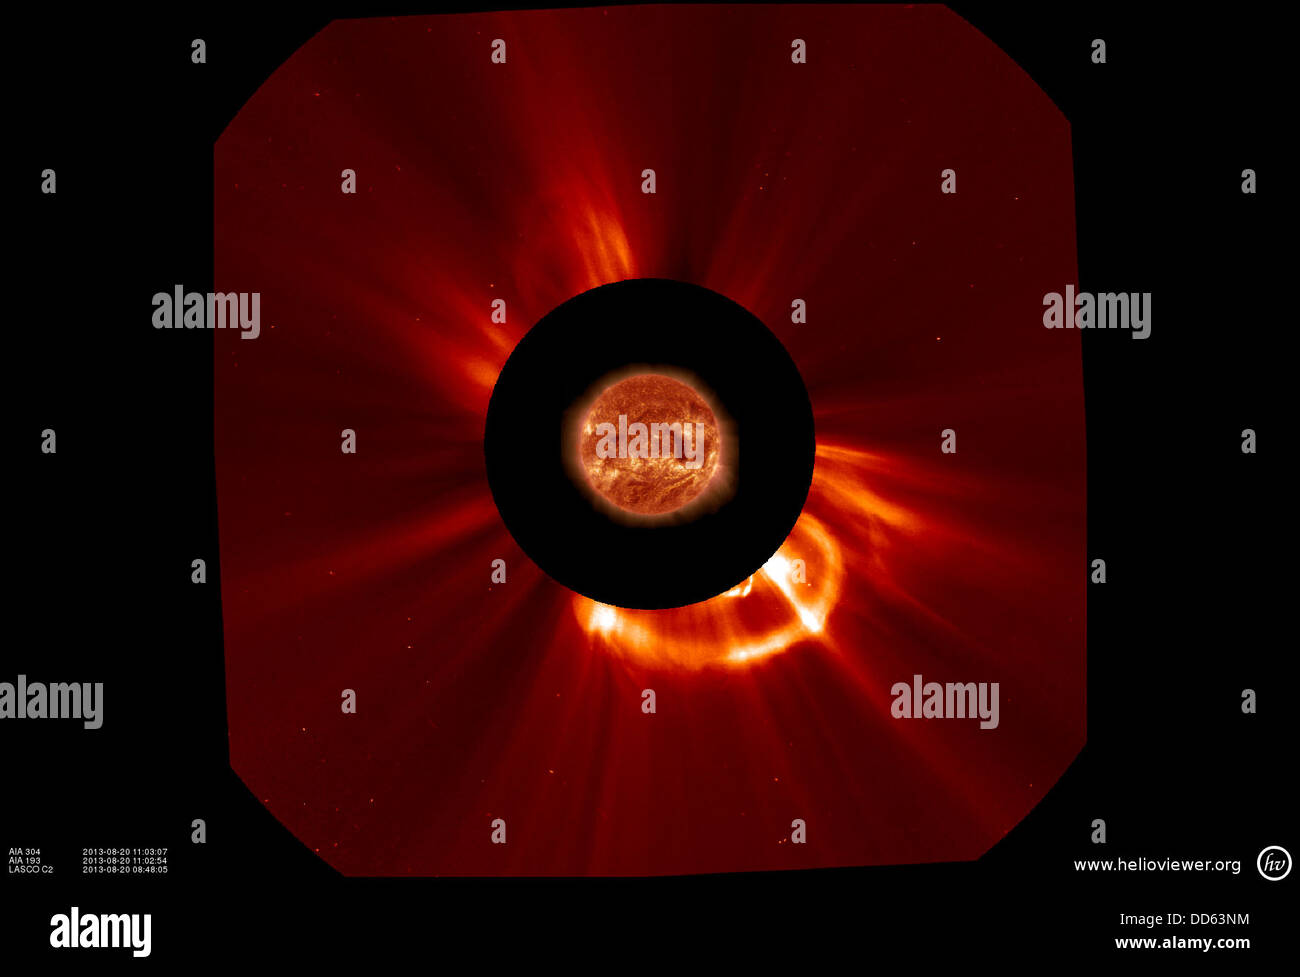 NASA Spacecraft Capture an Earth Directed Coronal Mass Ejection - Stock Image